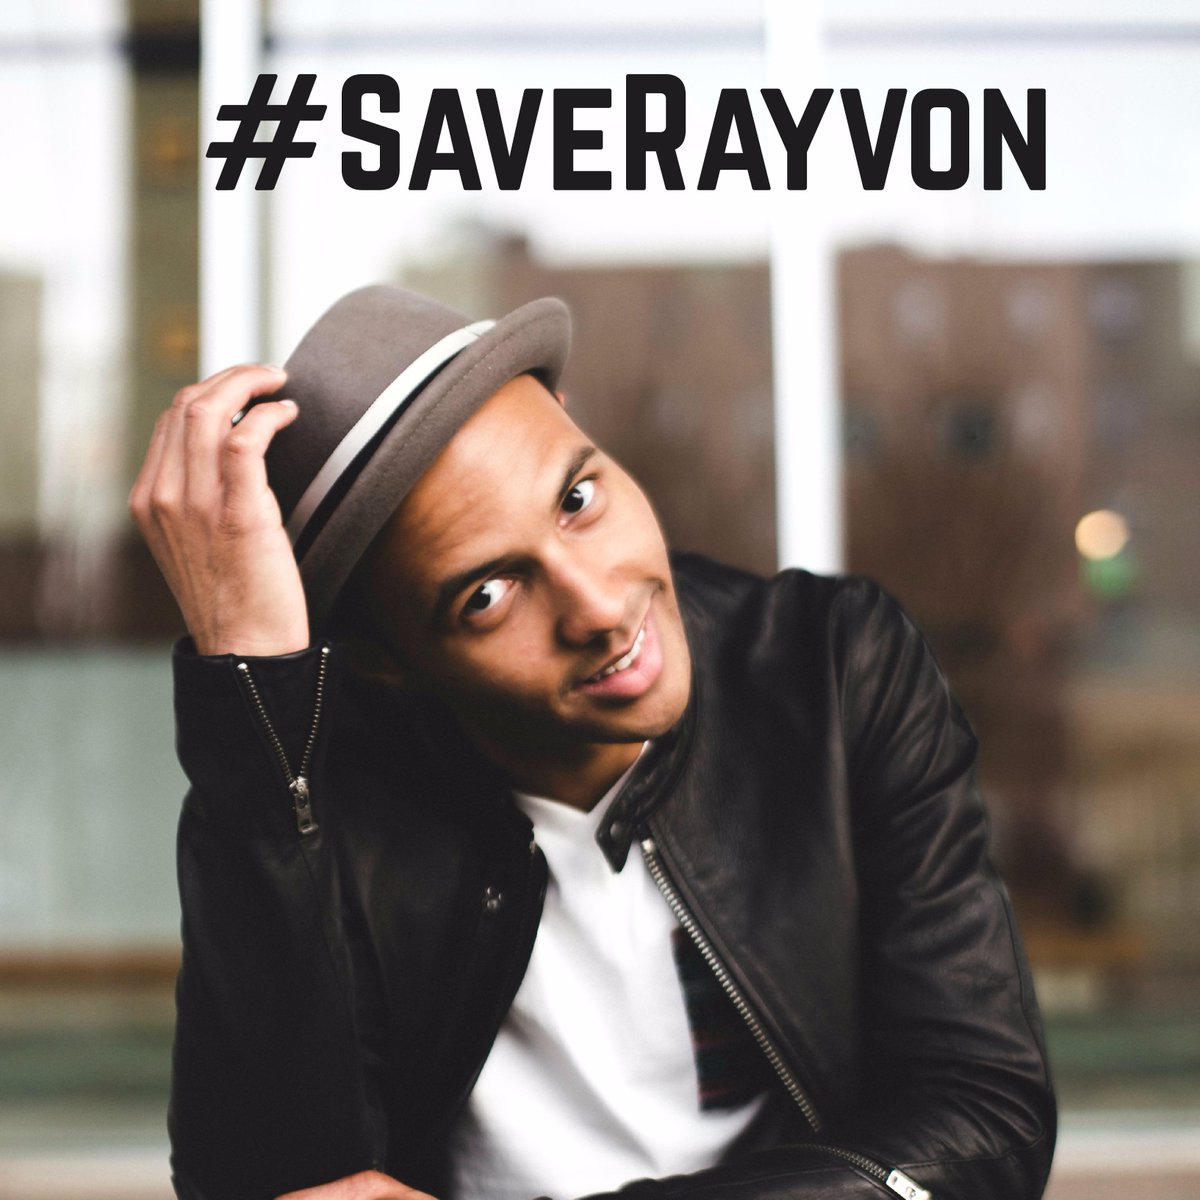 #IdolSave is NOW open! Tweet #SaveRayvon to get me on the American Idol Tour and the Top 5! THANK YOU! http://t.co/PTY58iKE6M